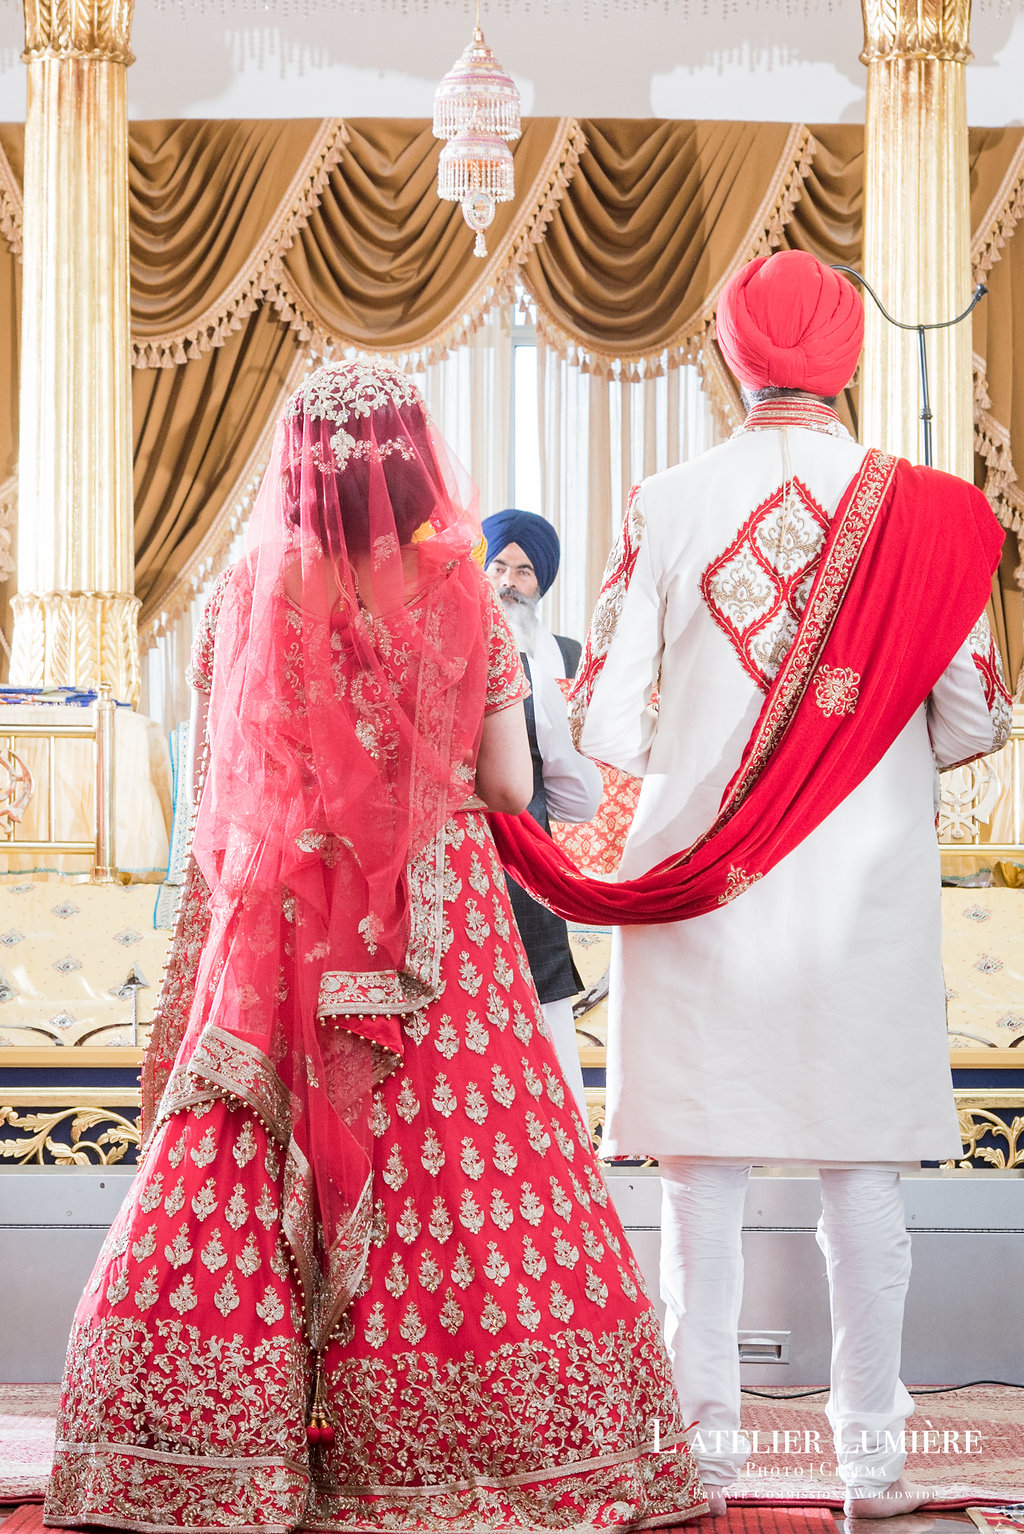 328-WED-Nav&Aman-Ceremony-EX-LR-Wm-LL6_1292